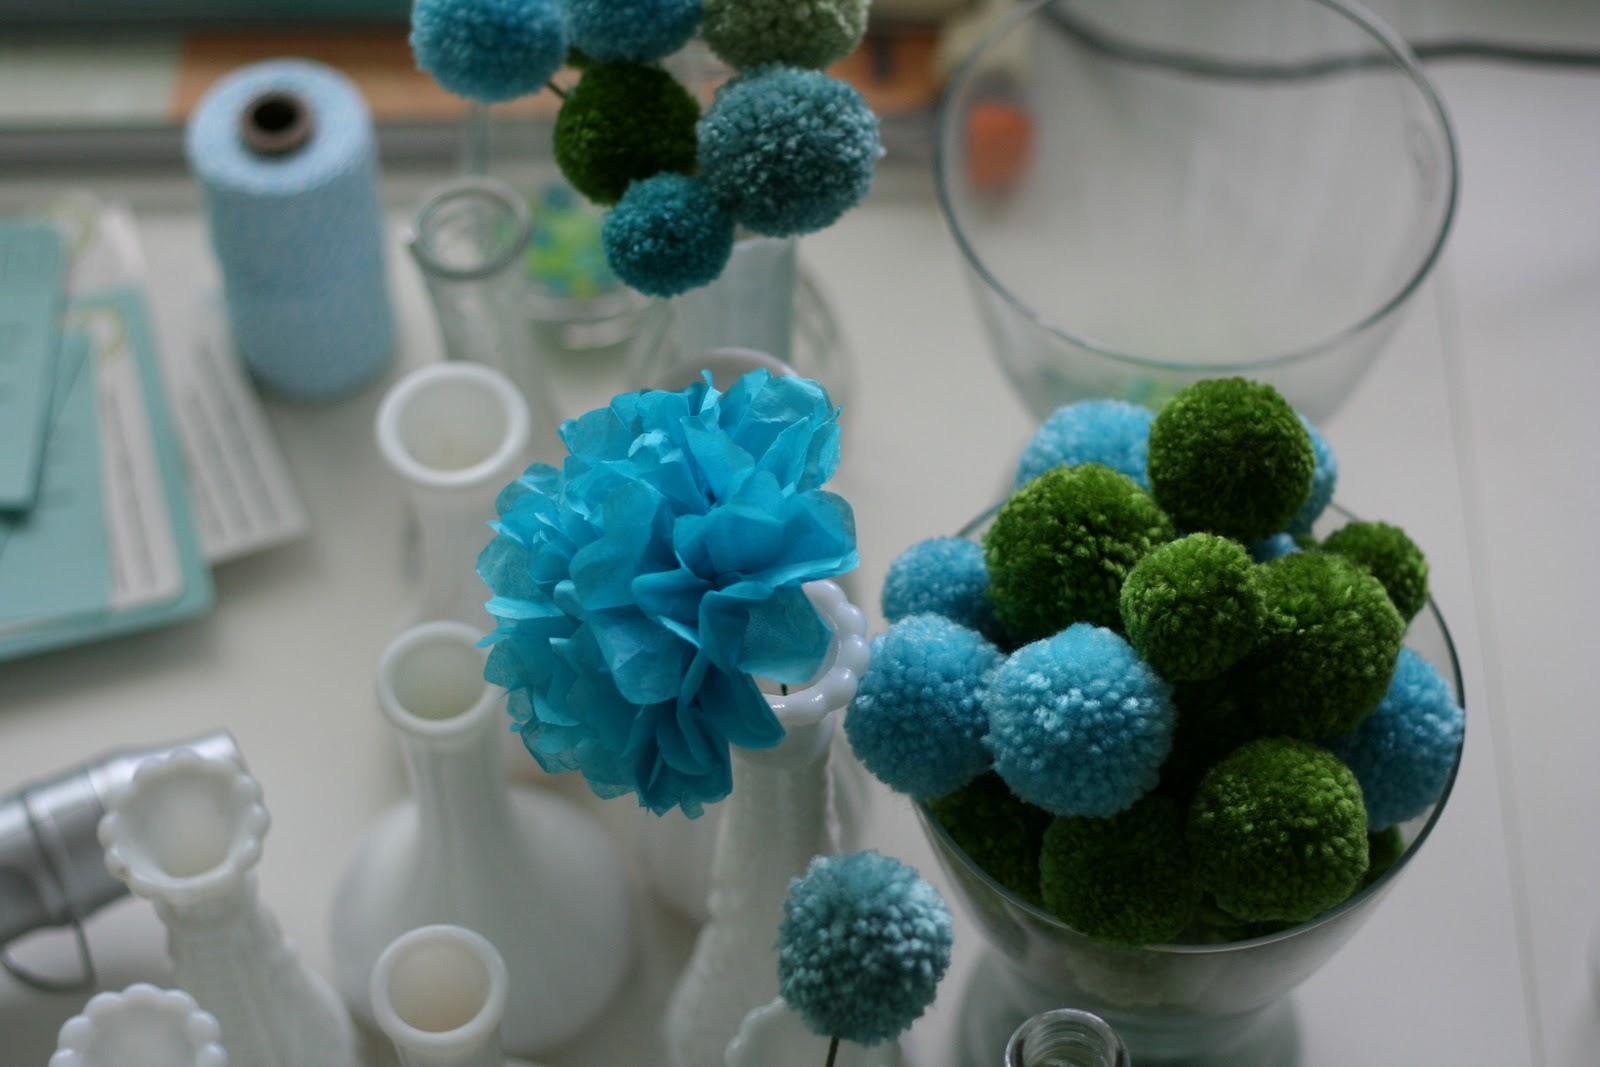 Dill Pickle Design Table Centerpieces